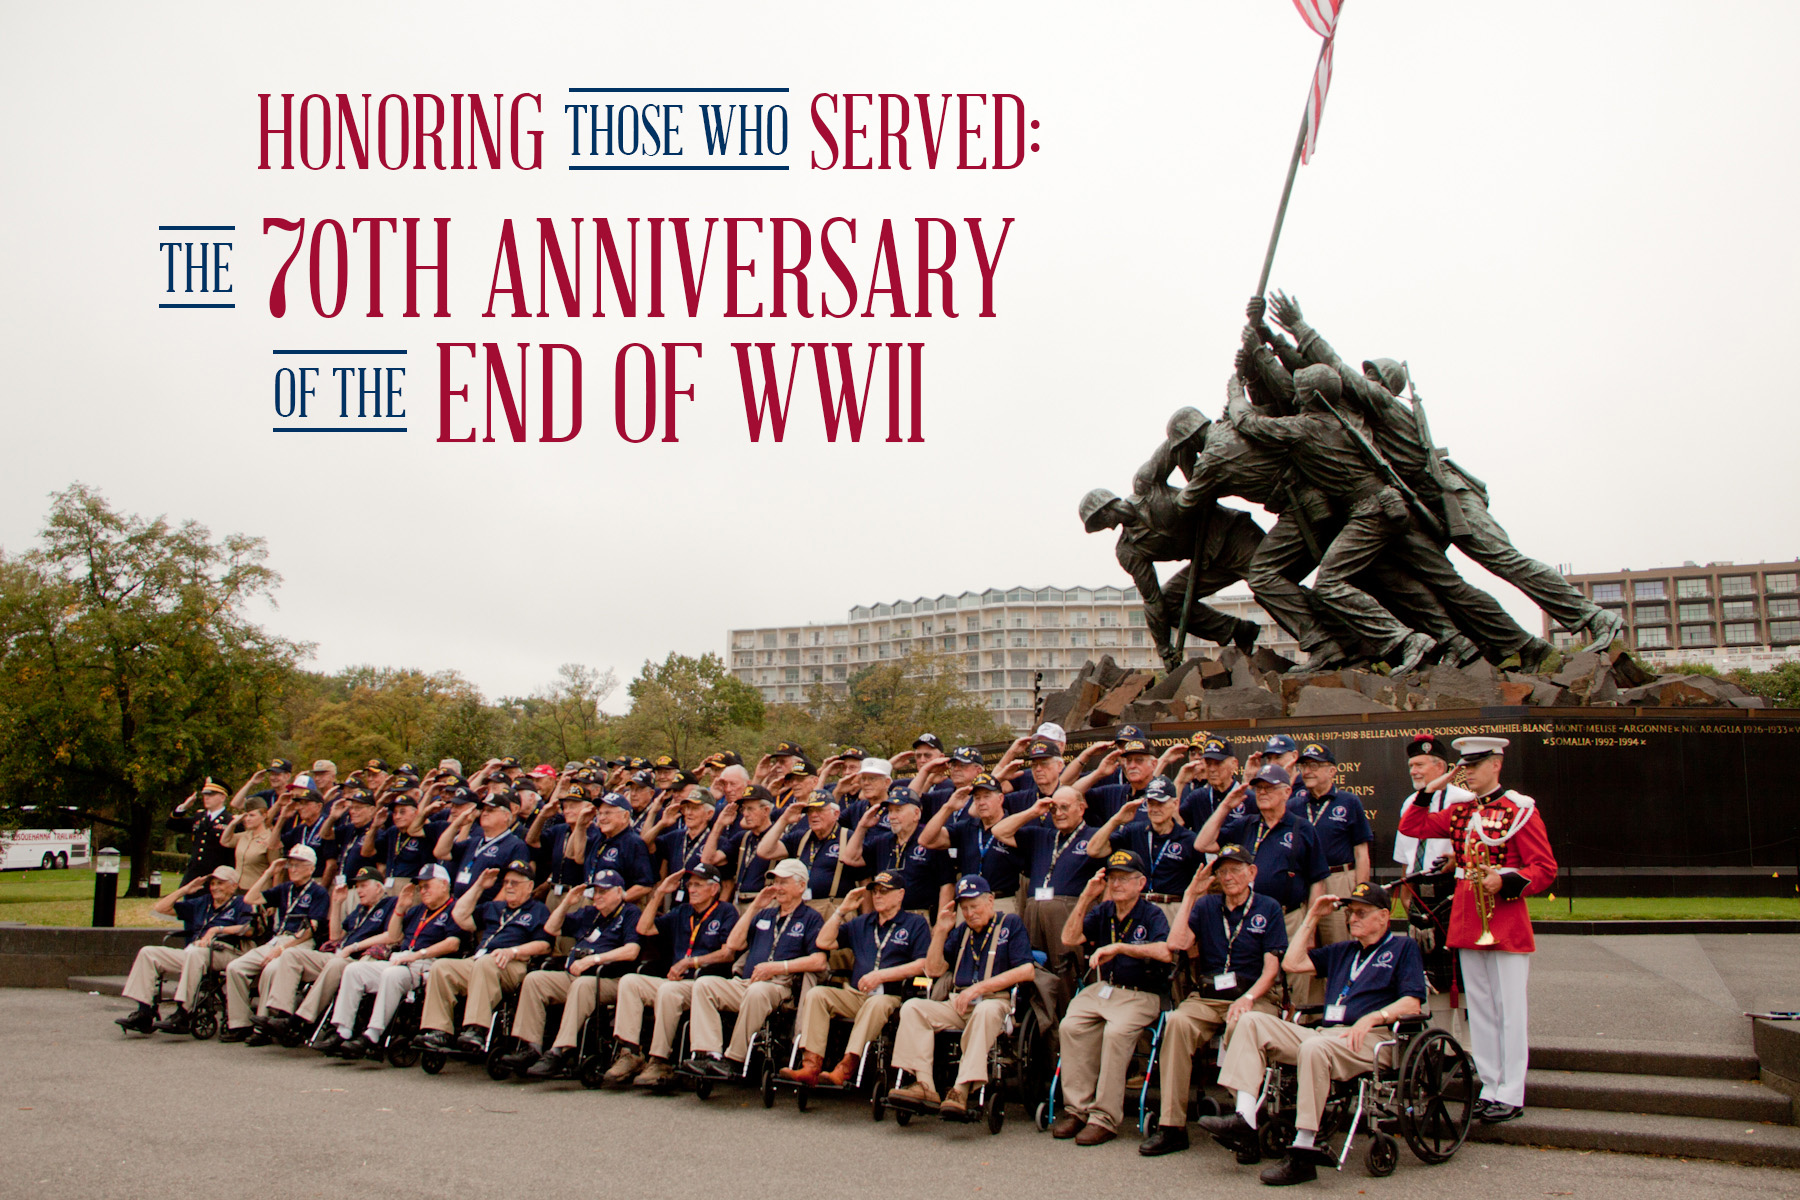 Honoring Those Who Served: the 70th Enniversary of the End of World War II